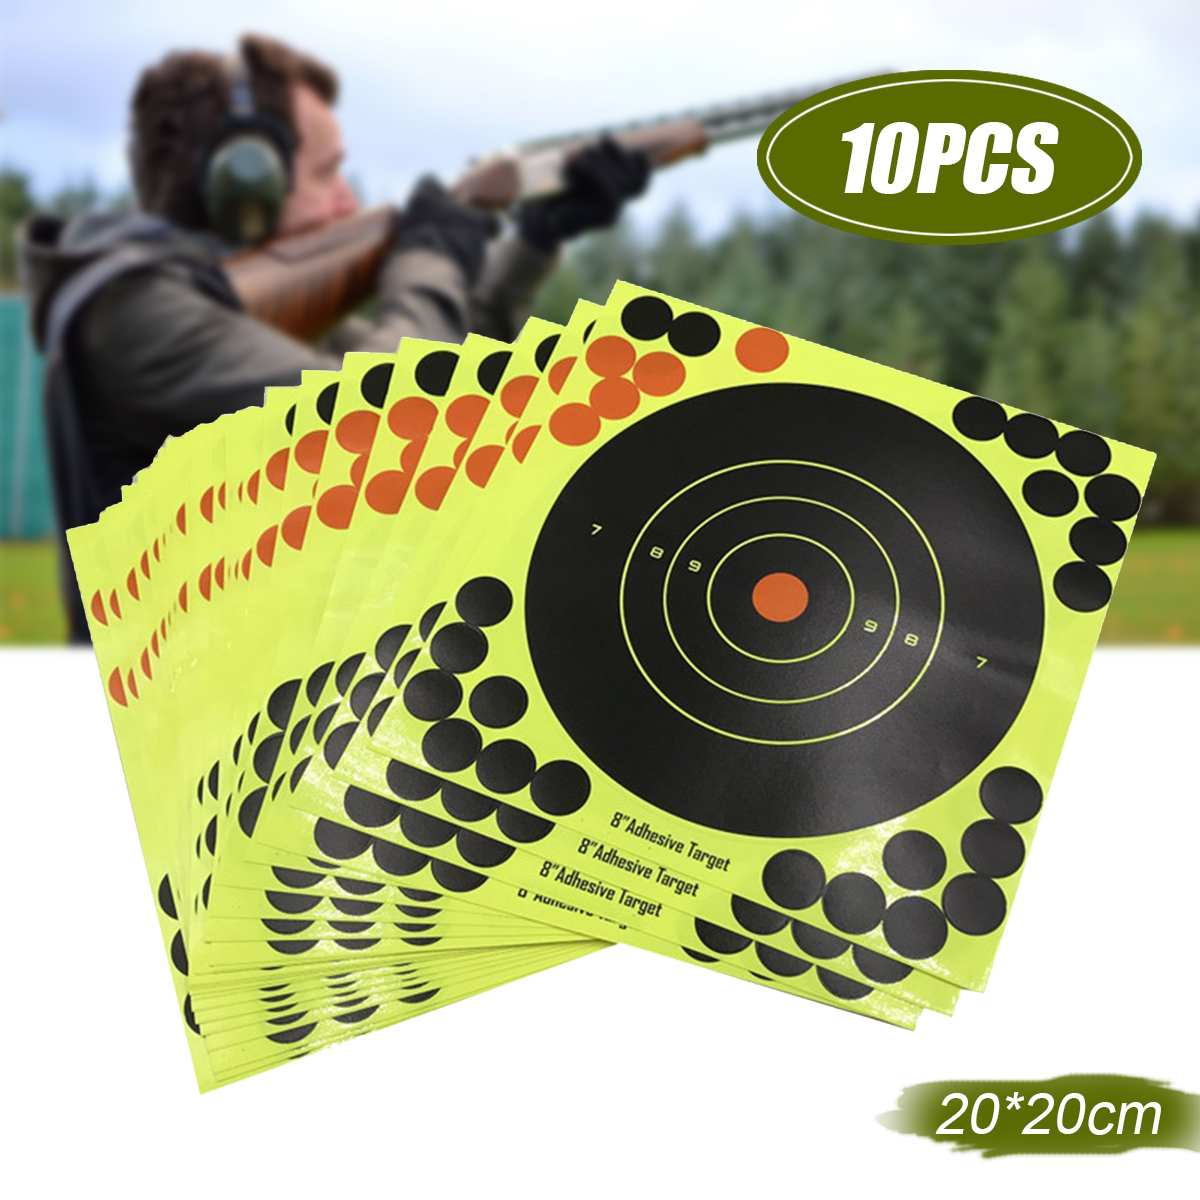 10PCS Shooting Adhesive Targets Splatter Reactive Target Sticker For Y Bow Hunting Shooting Practice 20x20CM